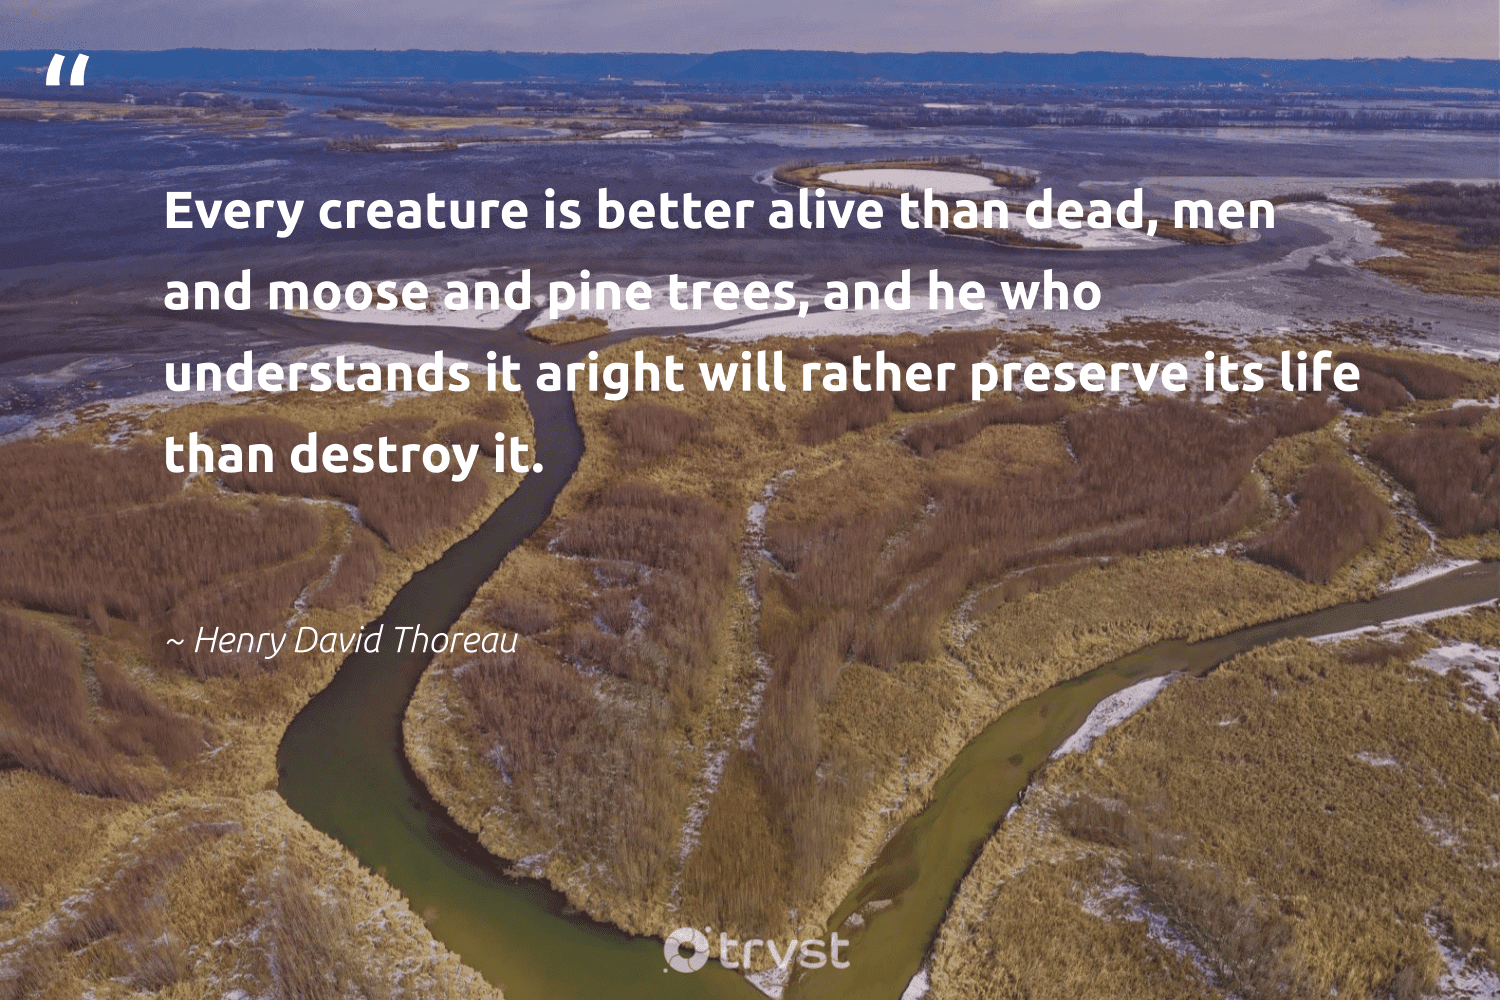 """Every creature is better alive than dead, men and moose and pine trees, and he who understands it aright will rather preserve its life than destroy it.""  - Henry David Thoreau #trvst #quotes #deforestation #trees #plantatree #wildernessnation #ecofriendly #dotherightthing #rainforest #environmentallyfriendly #green #beinspired"